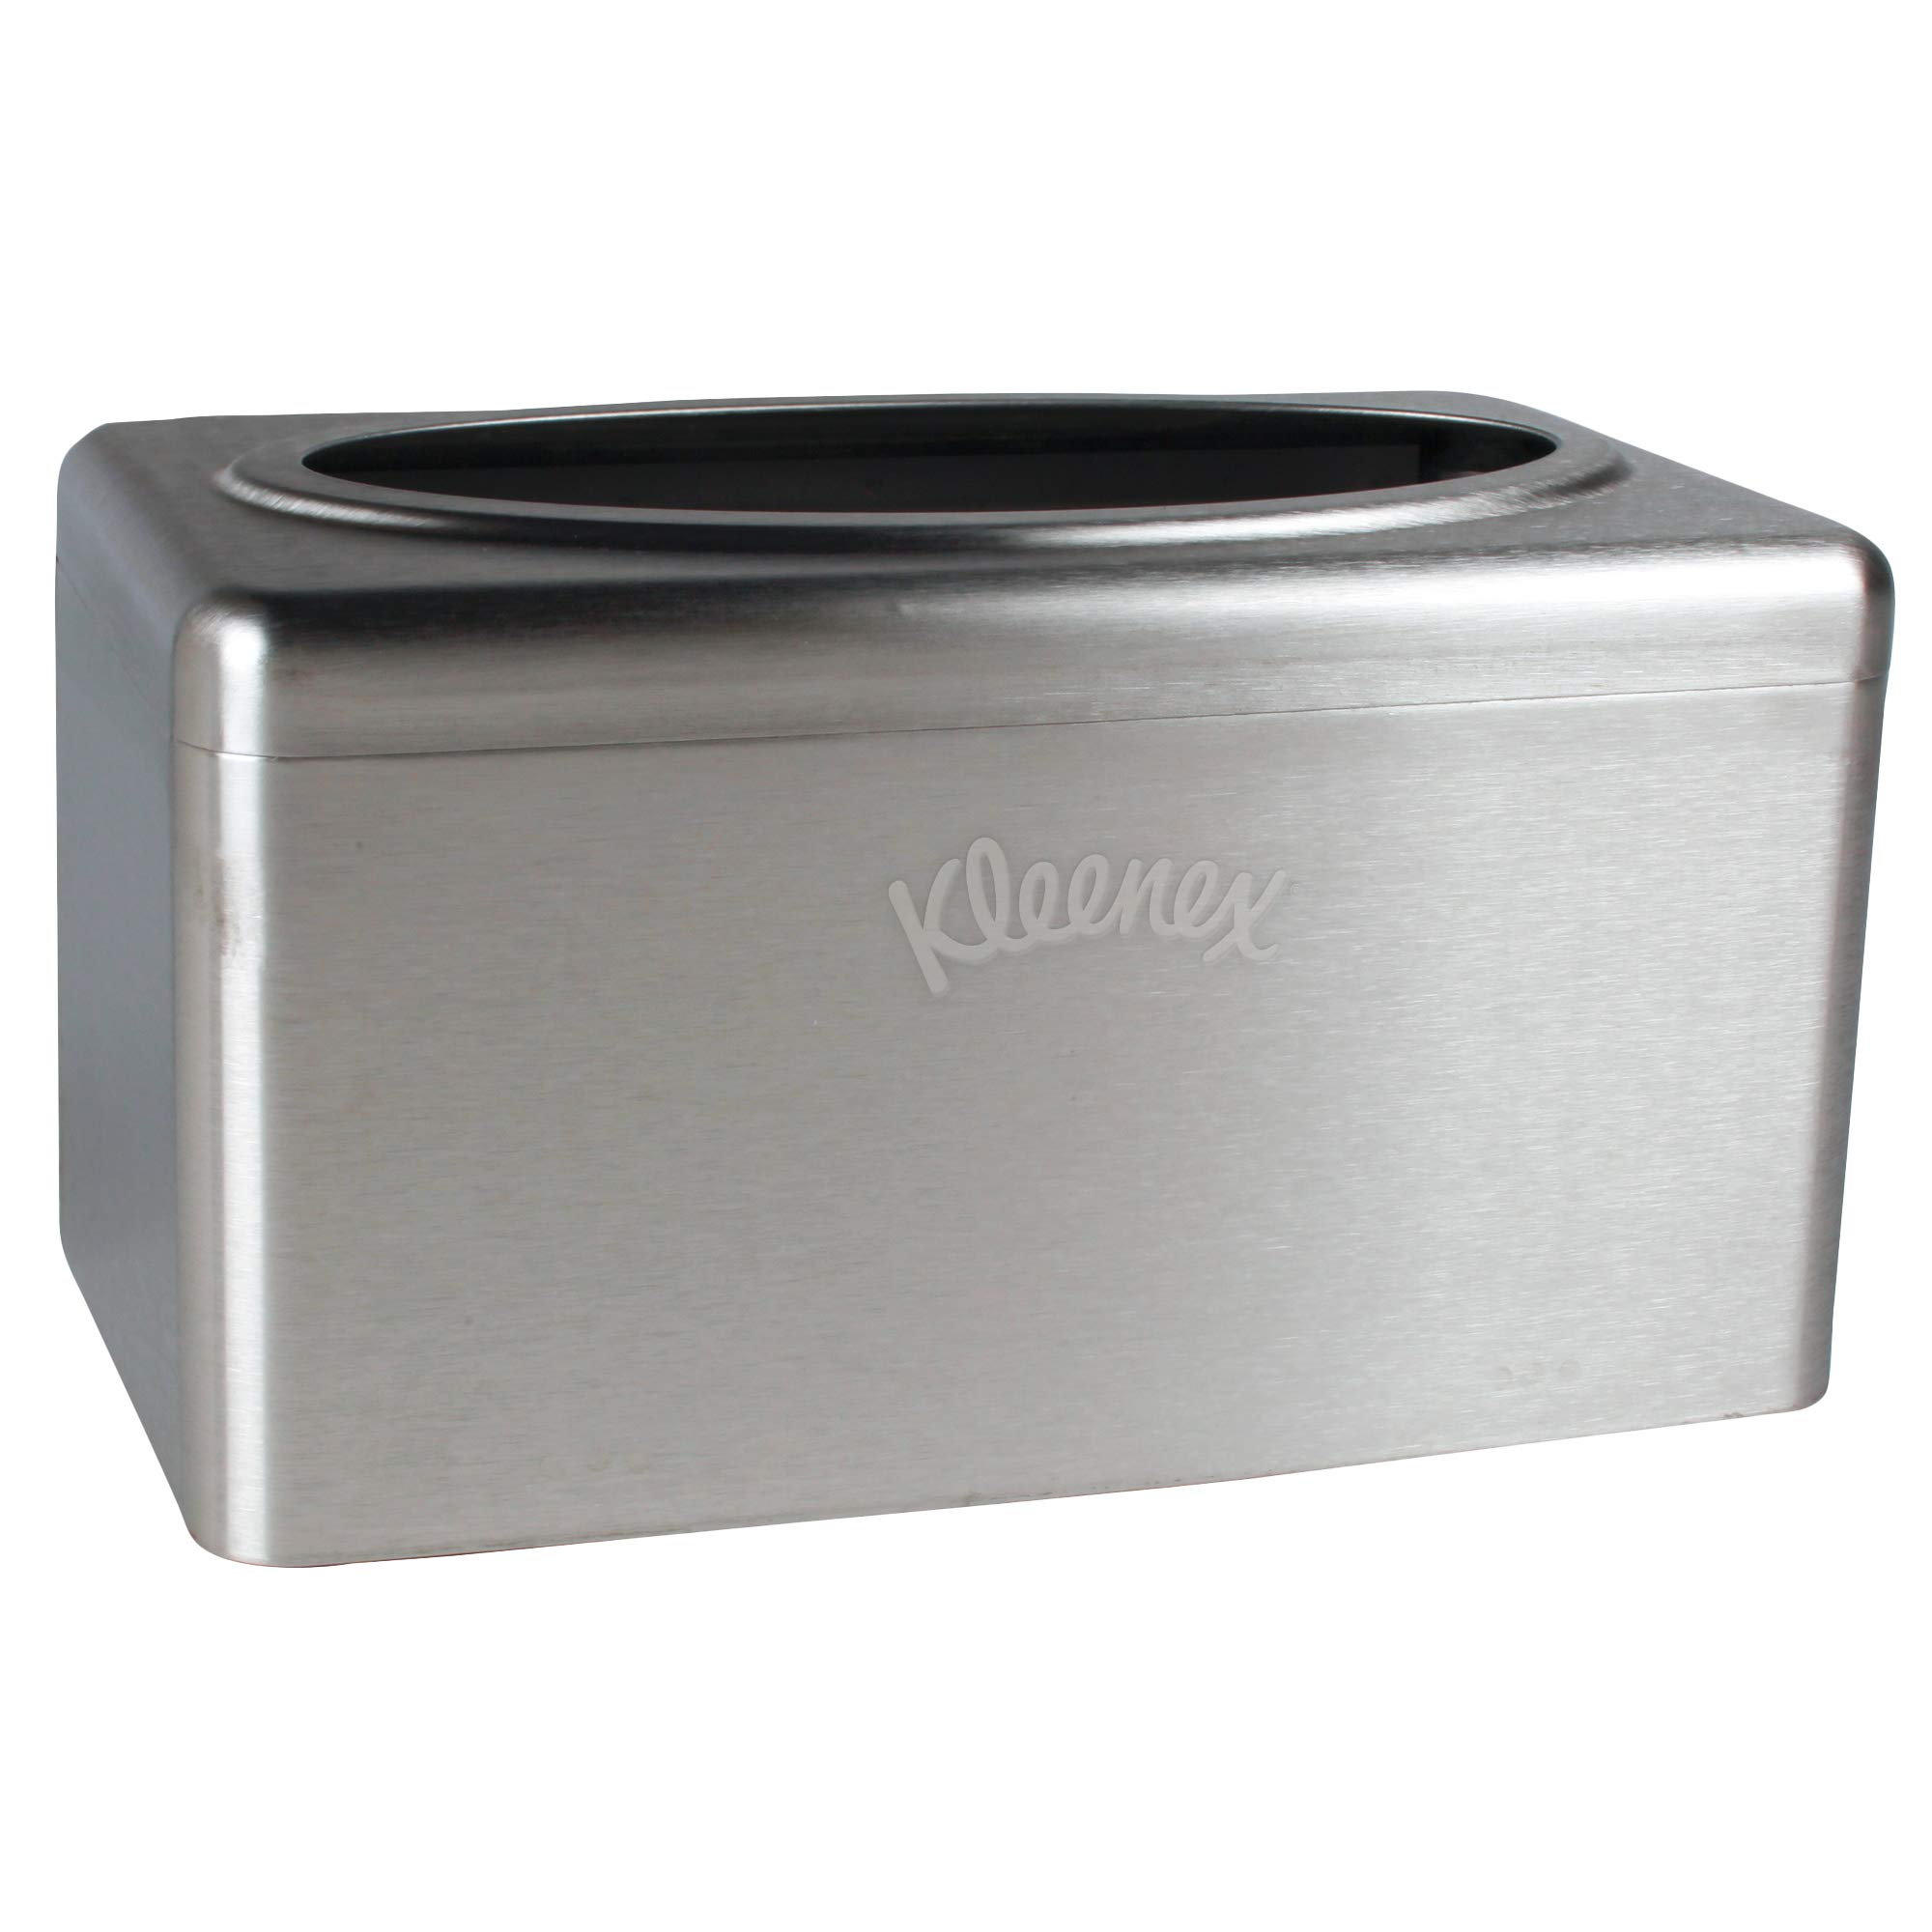 Kleenex Stainless Steel Countertop Box Towel Cover (09924), for Kleenex POP-UP Box Hand Towels, 2 per Case